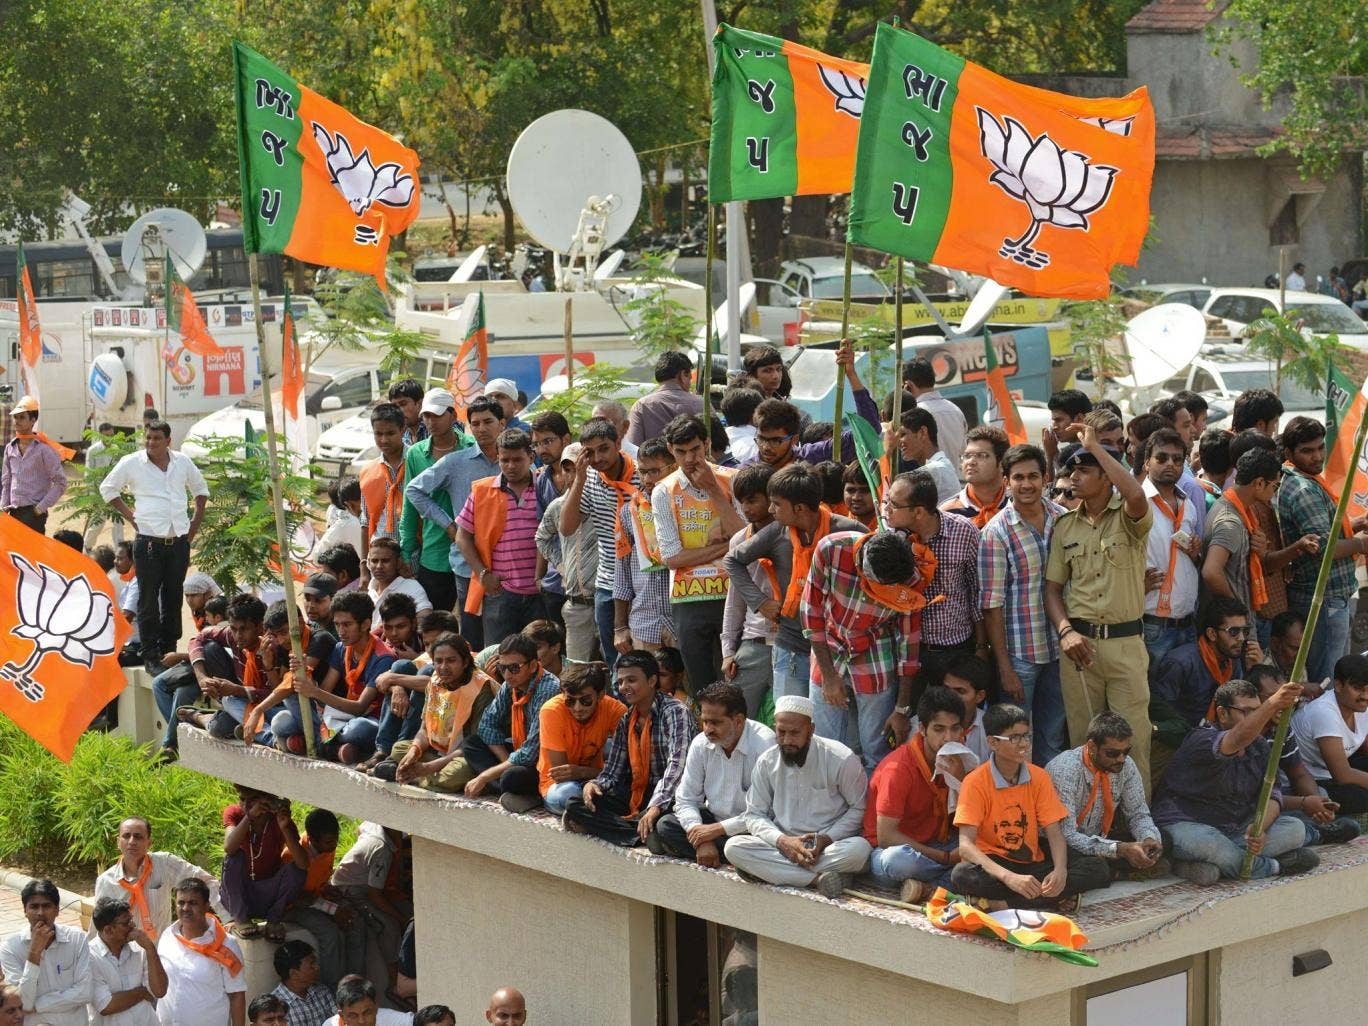 Indian Bharatiya Janata Party (BJP) supporters wait for the arrival of Narendra Modi